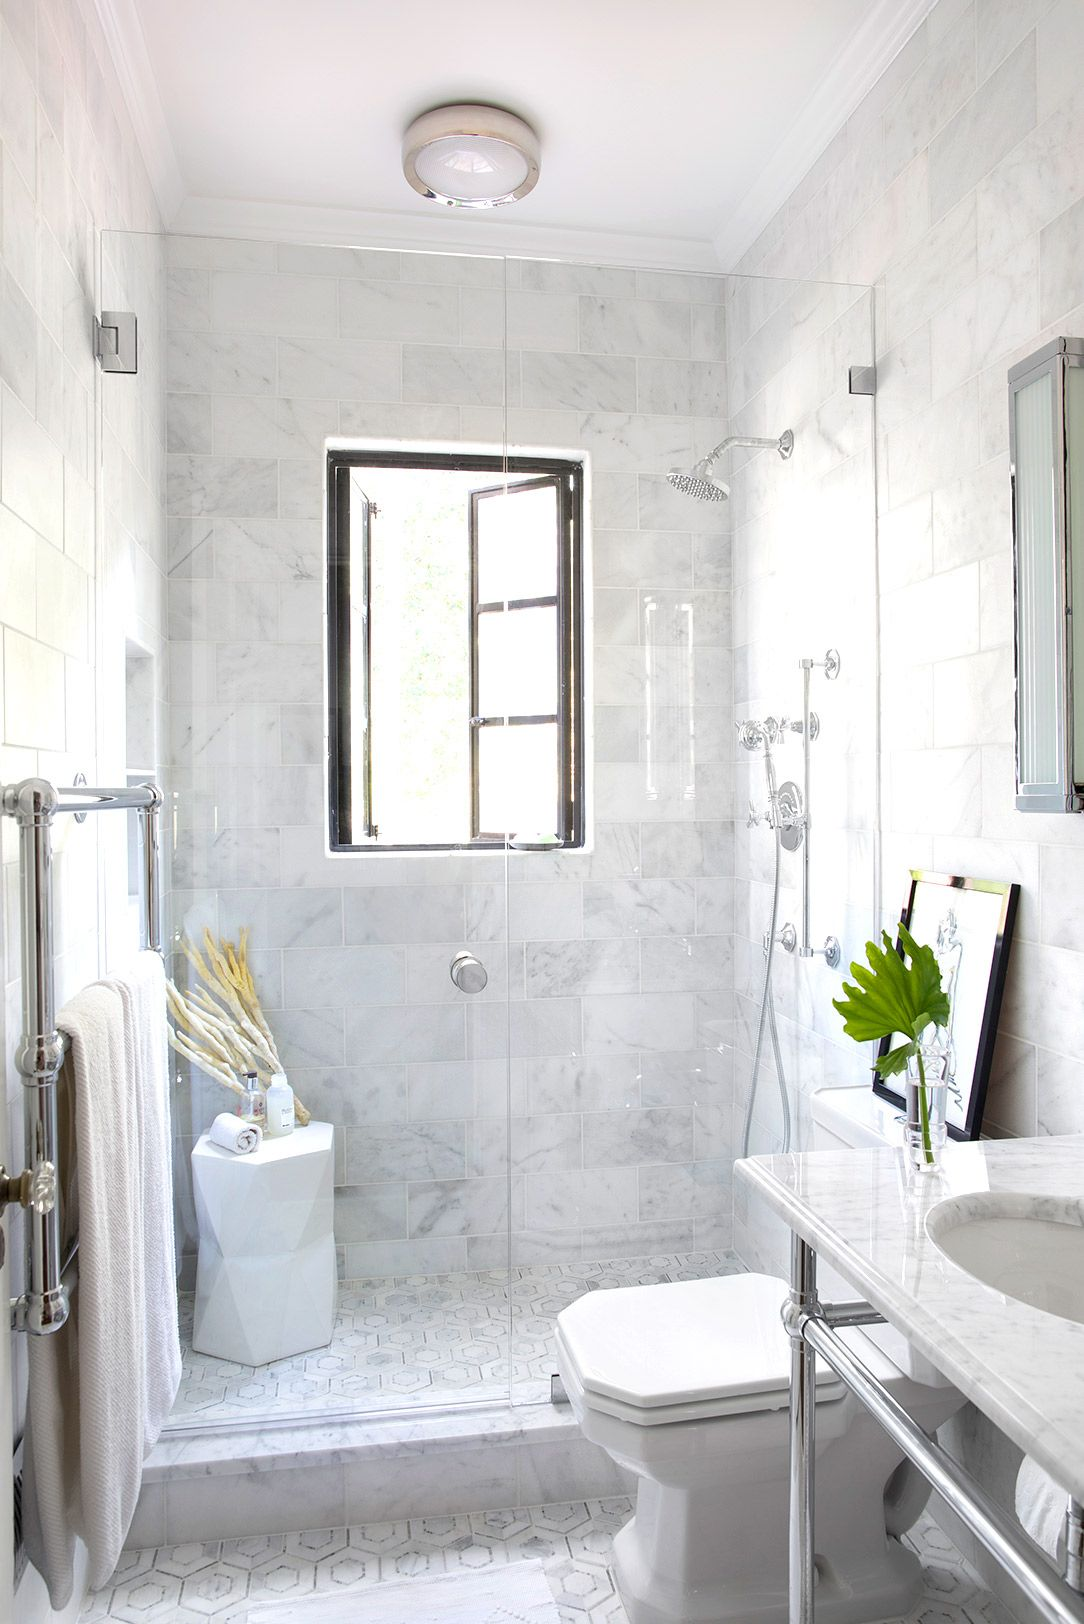 Photos Of Small Bathrooms Yes This Home Confirms The Updated Traditional Trend Isn